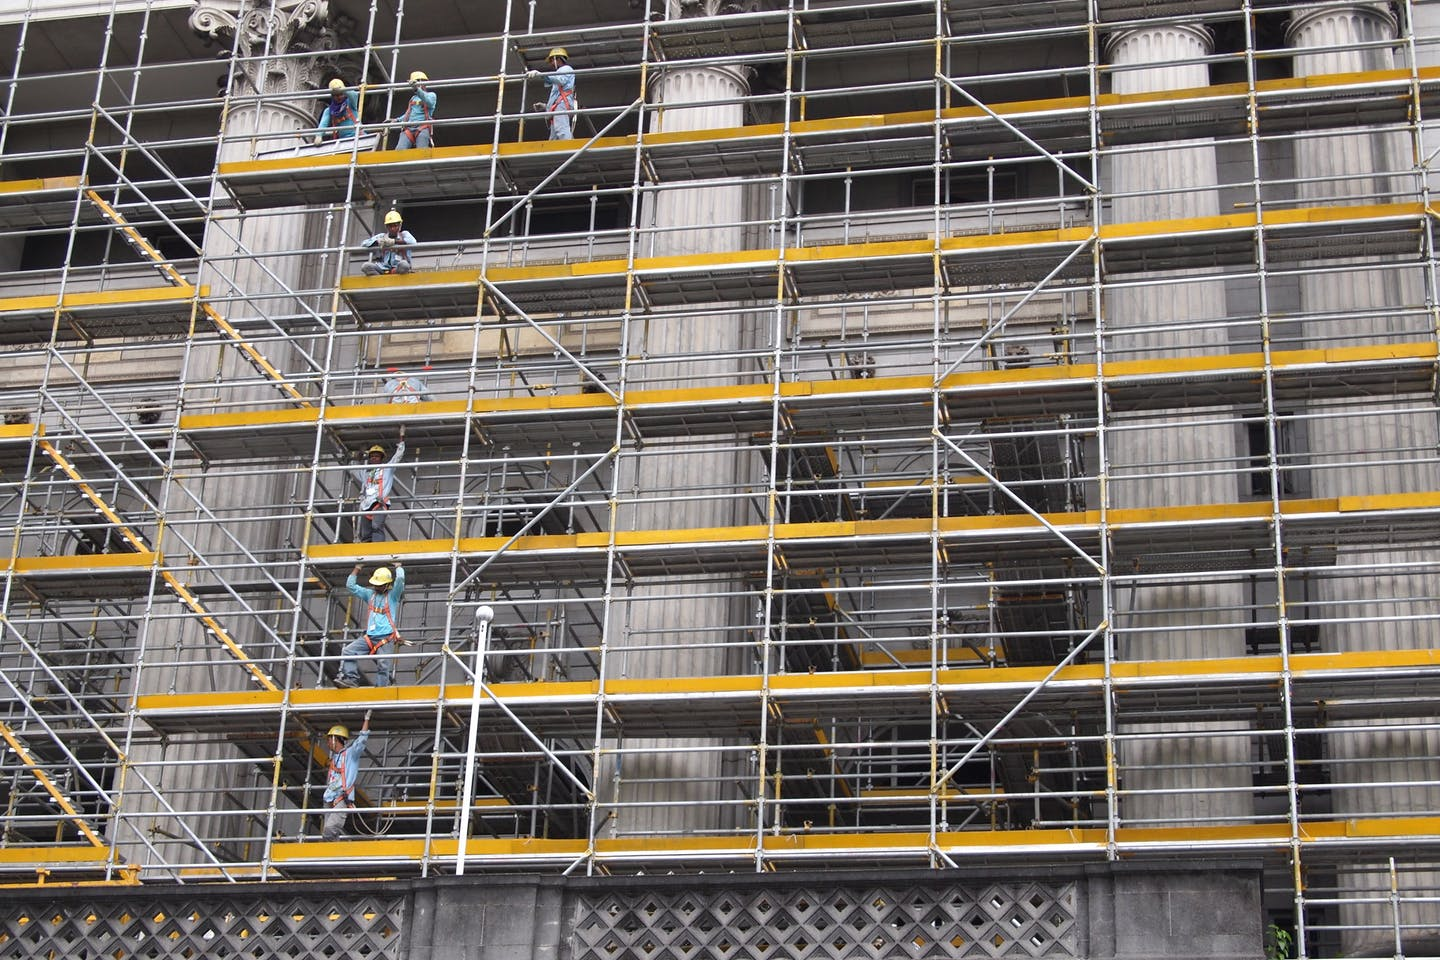 Workers on a scaffolding on a construction site in Singapore